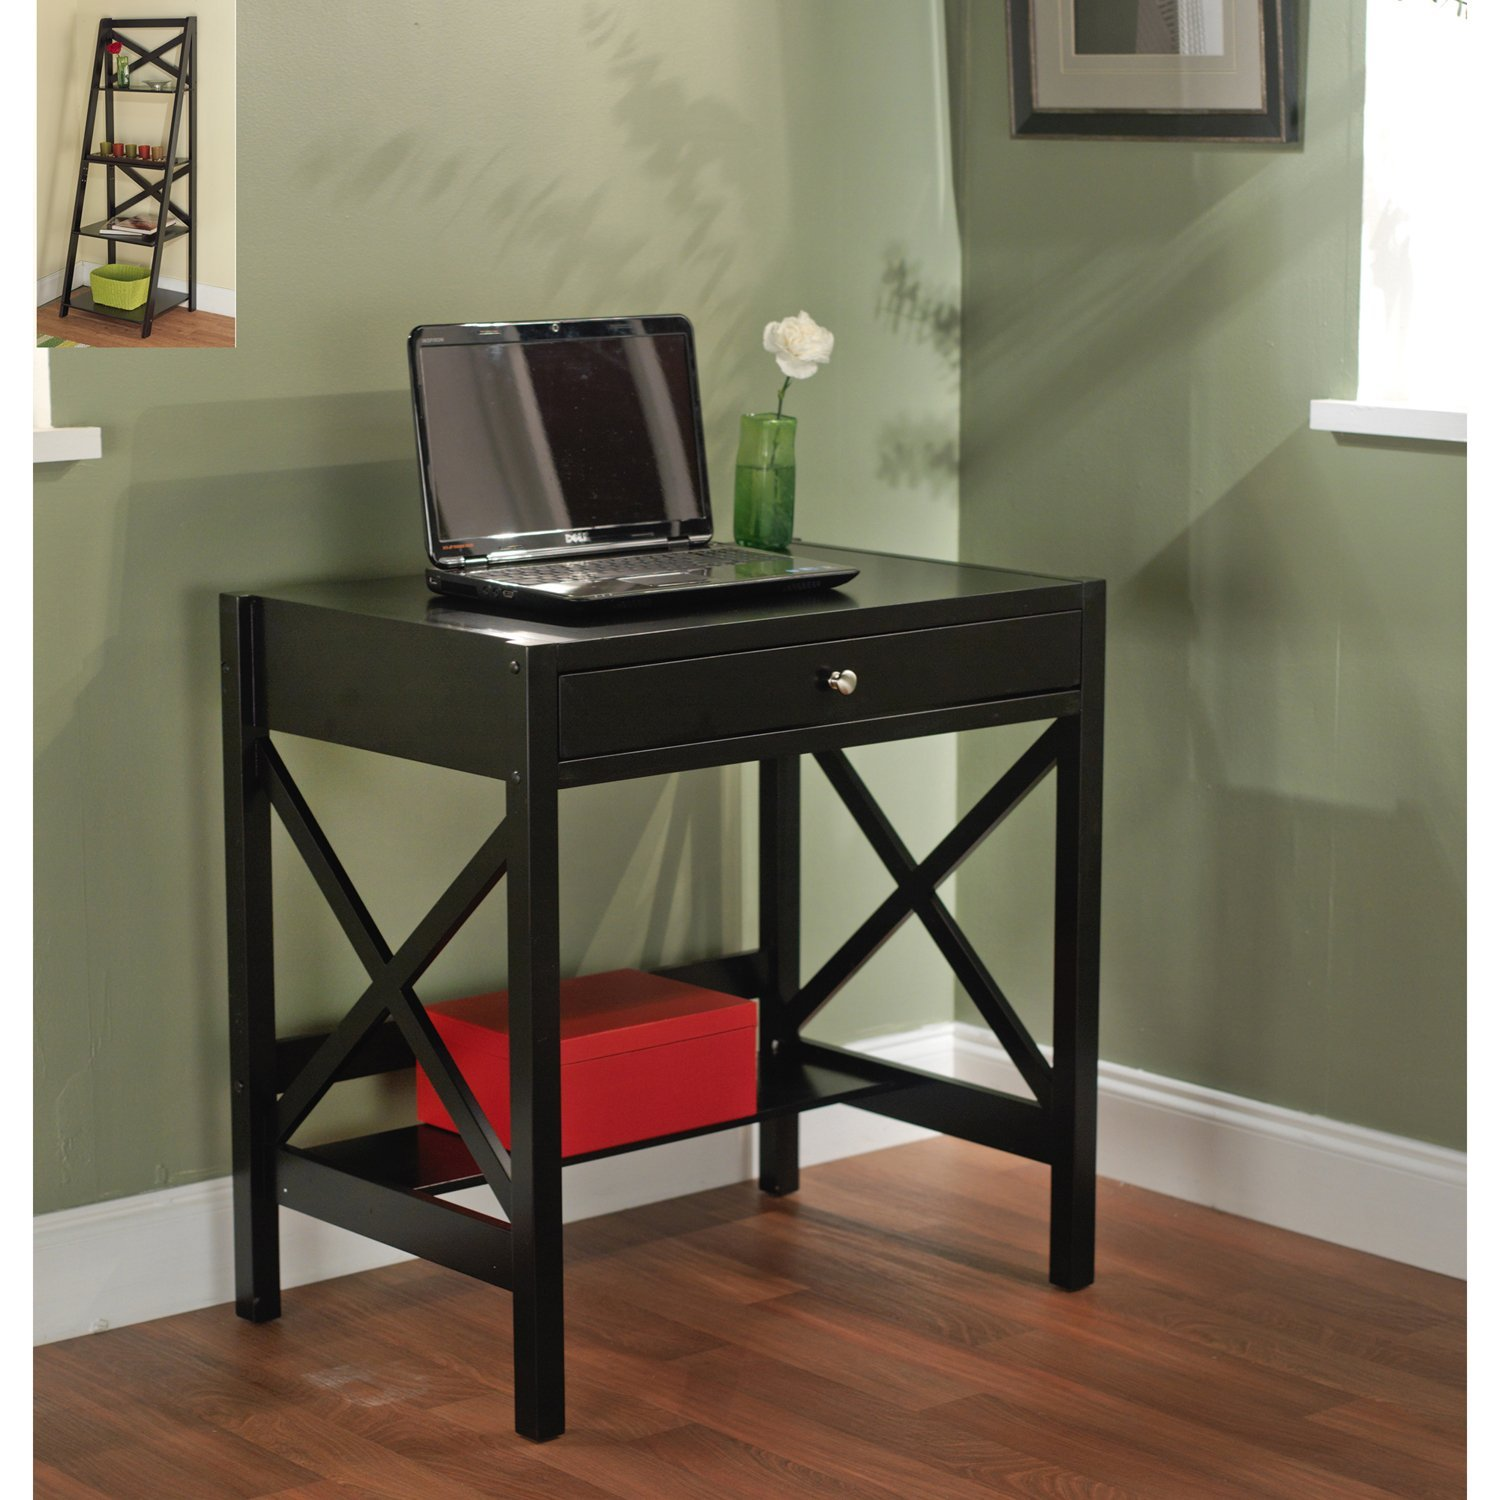 Get Quotations · Simple Living   Best Choice Wooden Black Writing Desk With  1 Drawer And Shelf (Classic